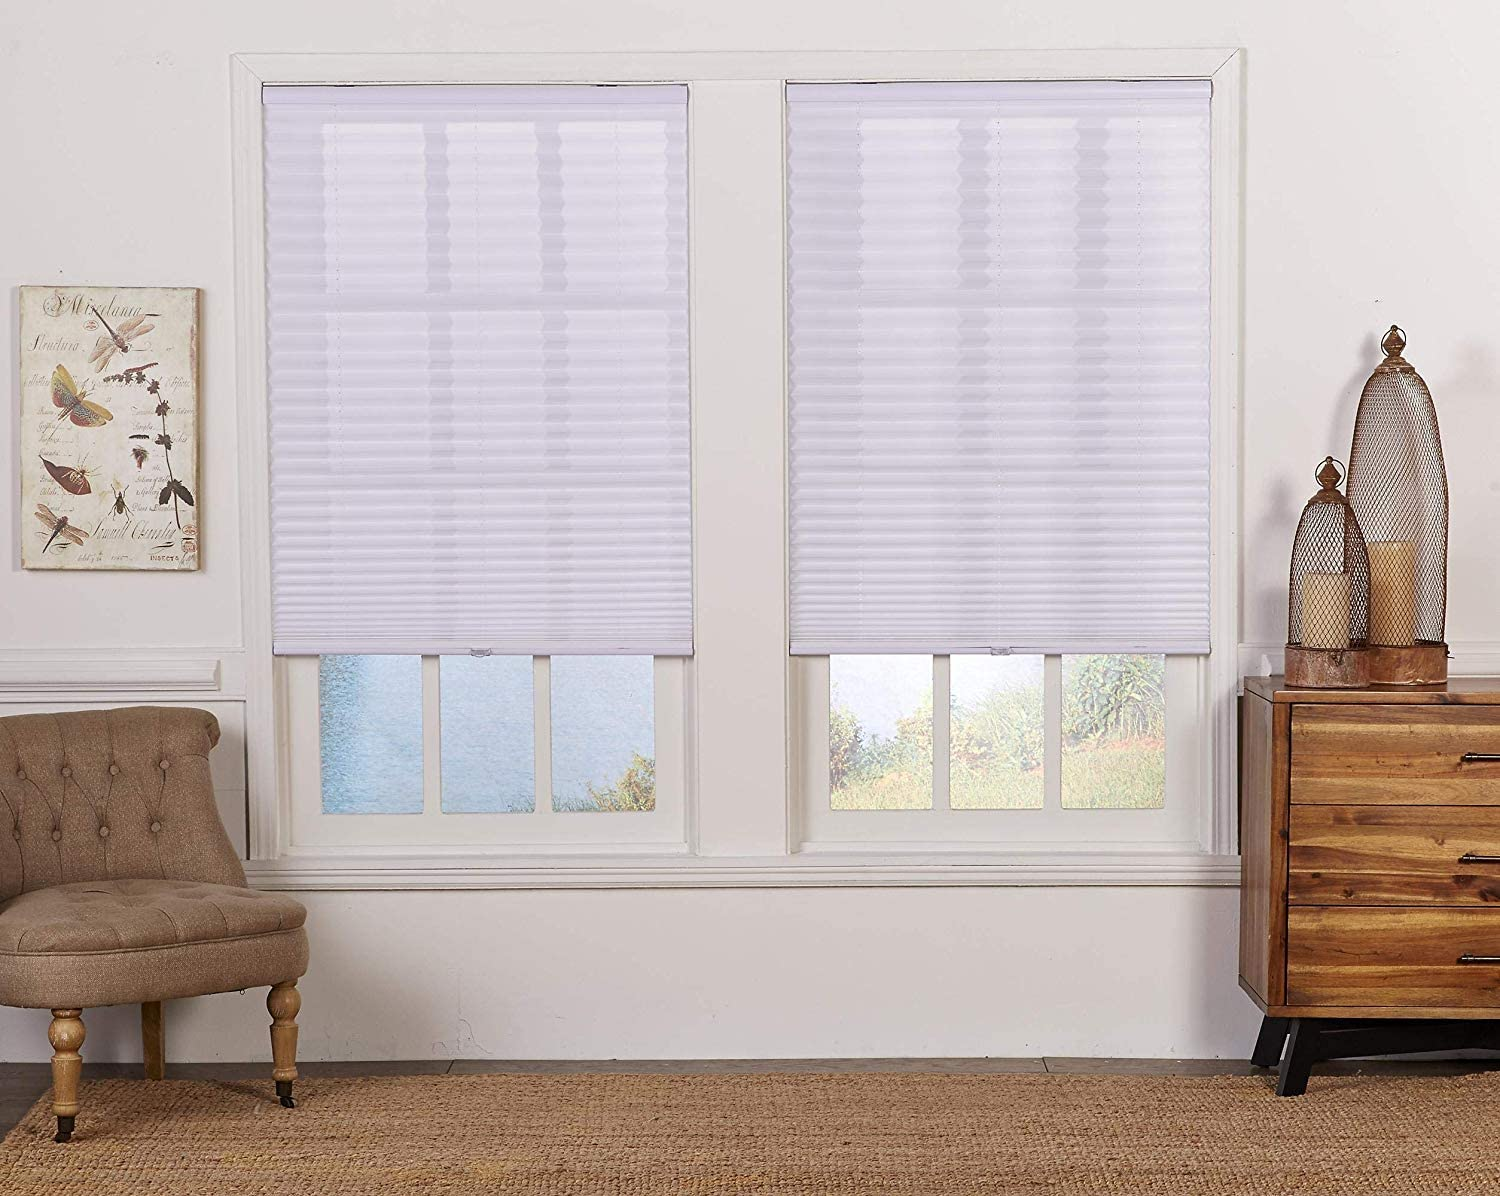 White 26.5W x 48L Inches DEZ Furnishings QDWT264480 Cordless Light Filtering Pleated Shade